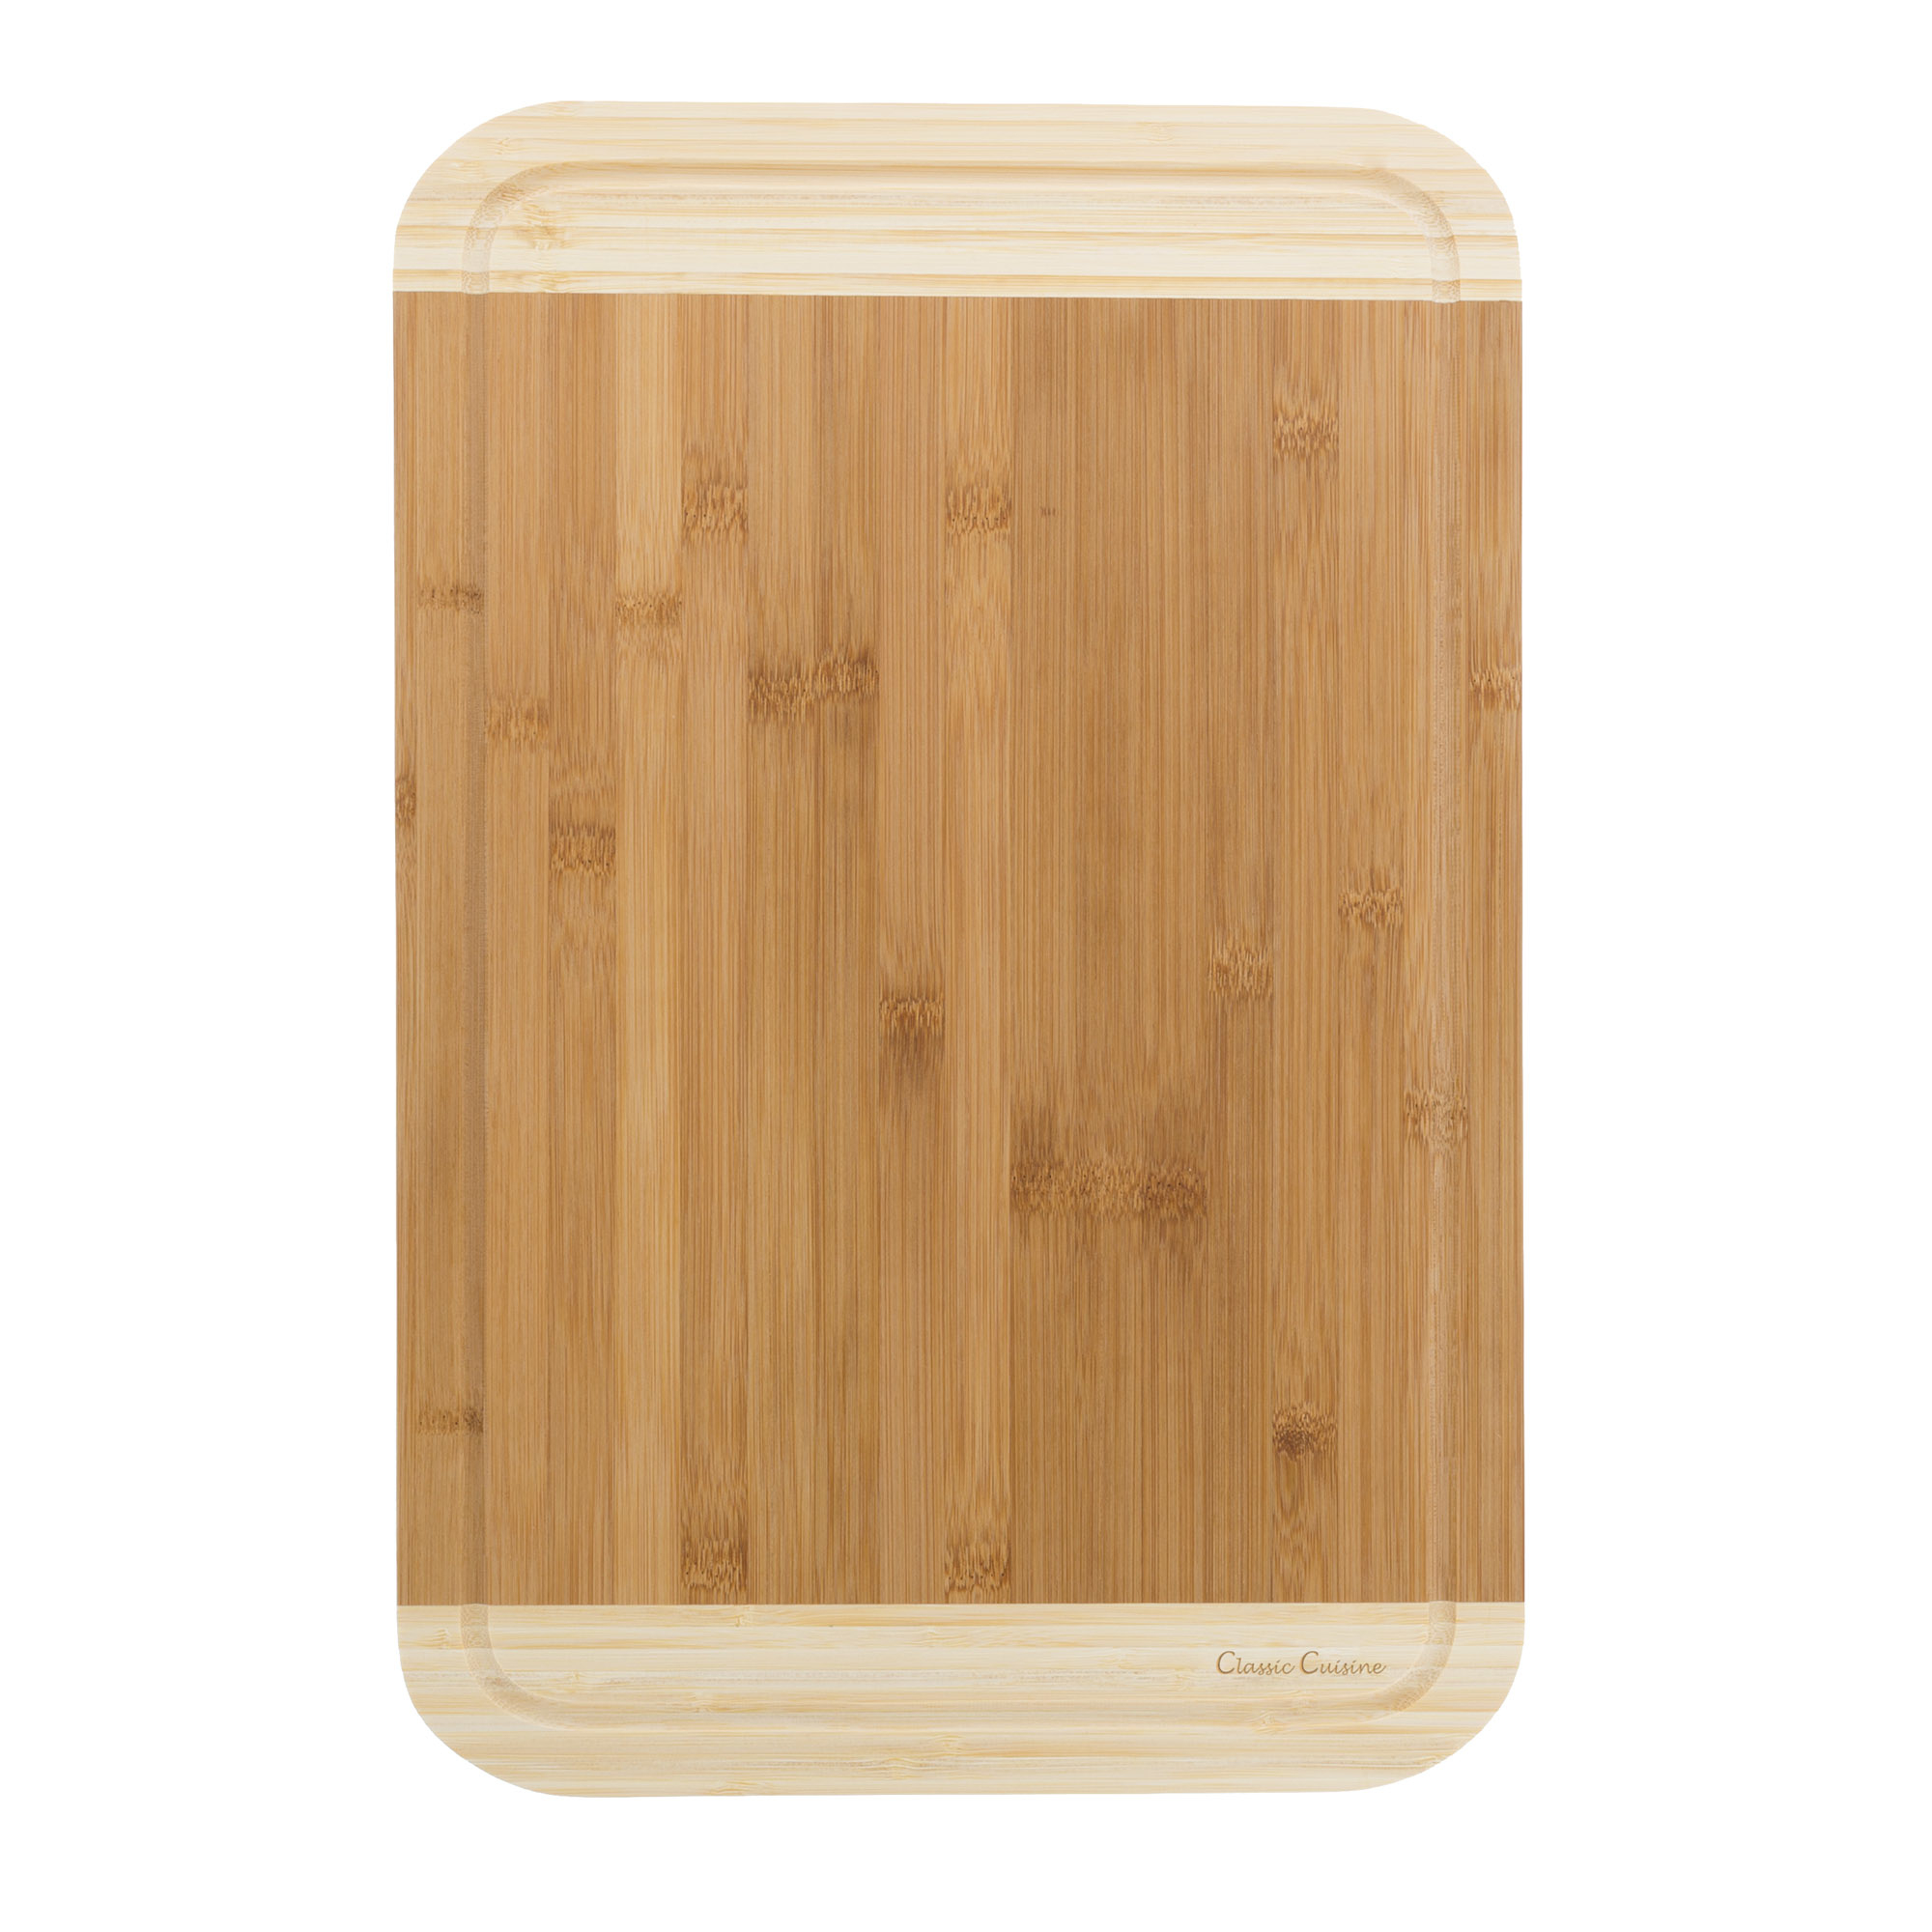 Wooden Thick Bamboo Professional Quality Cutting Board 81 x 12 Inches Juice Groove Antibacterial